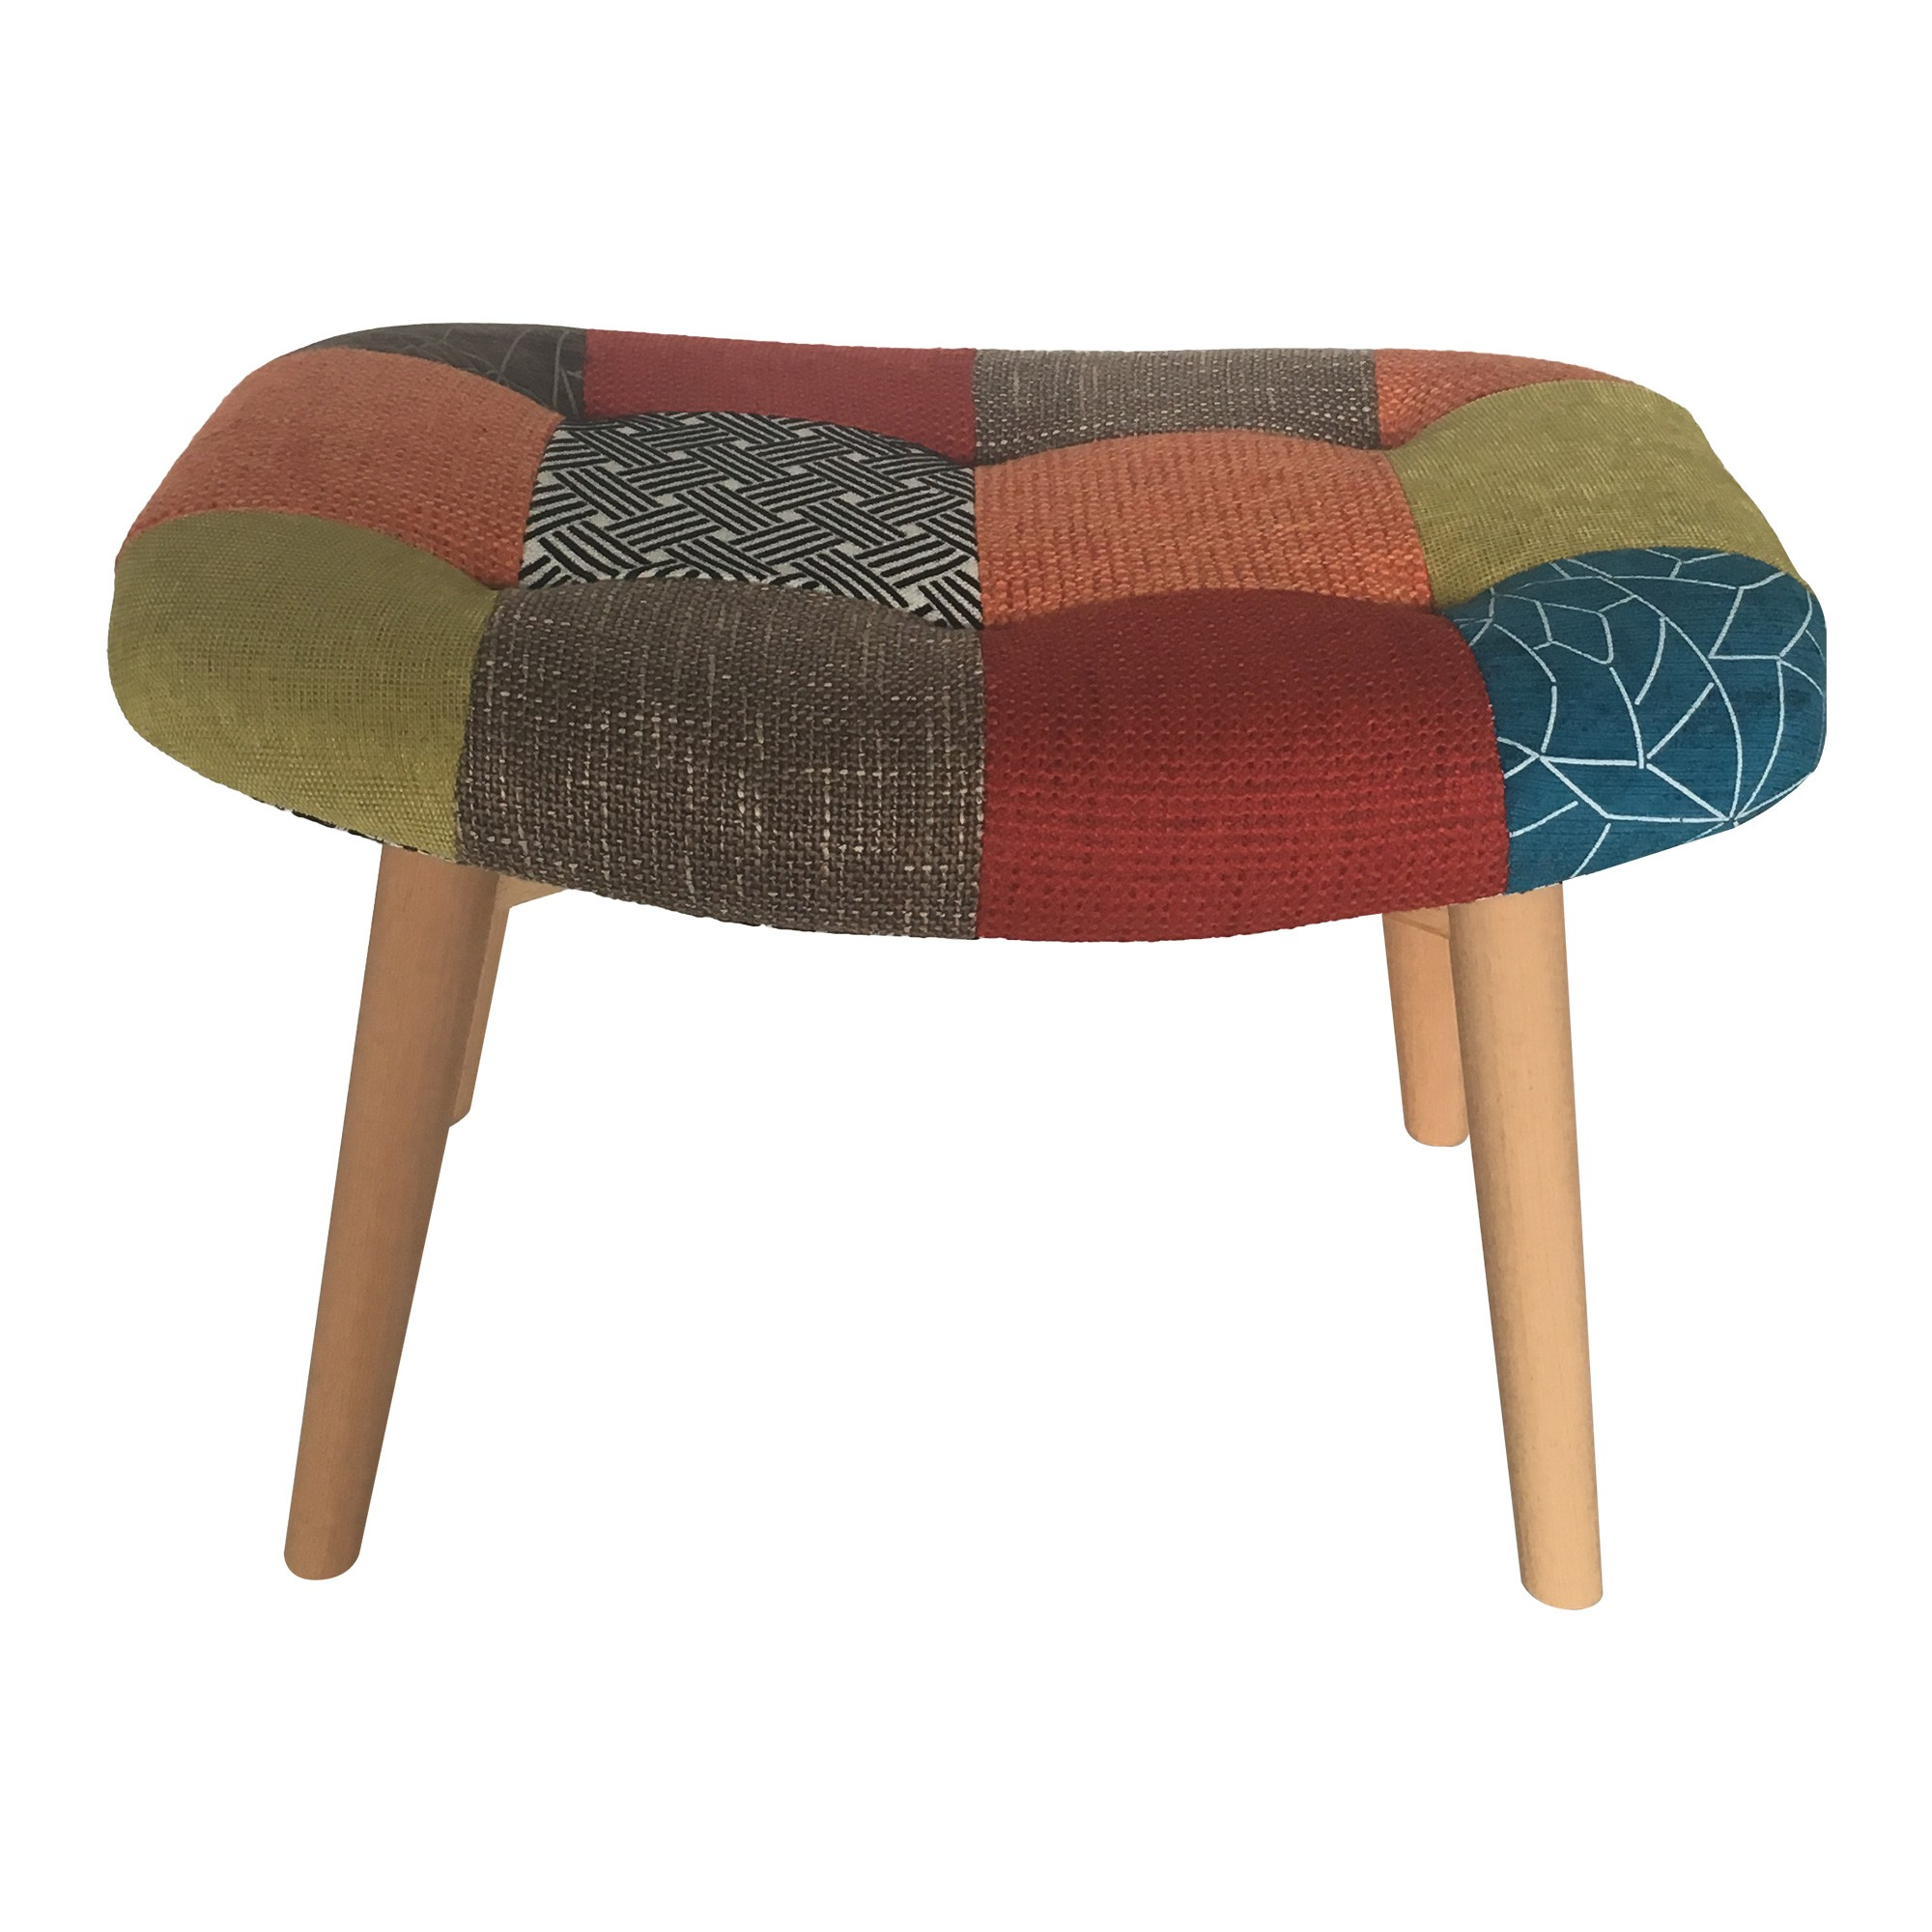 Dalbert Patchwork Fabric Foot Stool, Multi